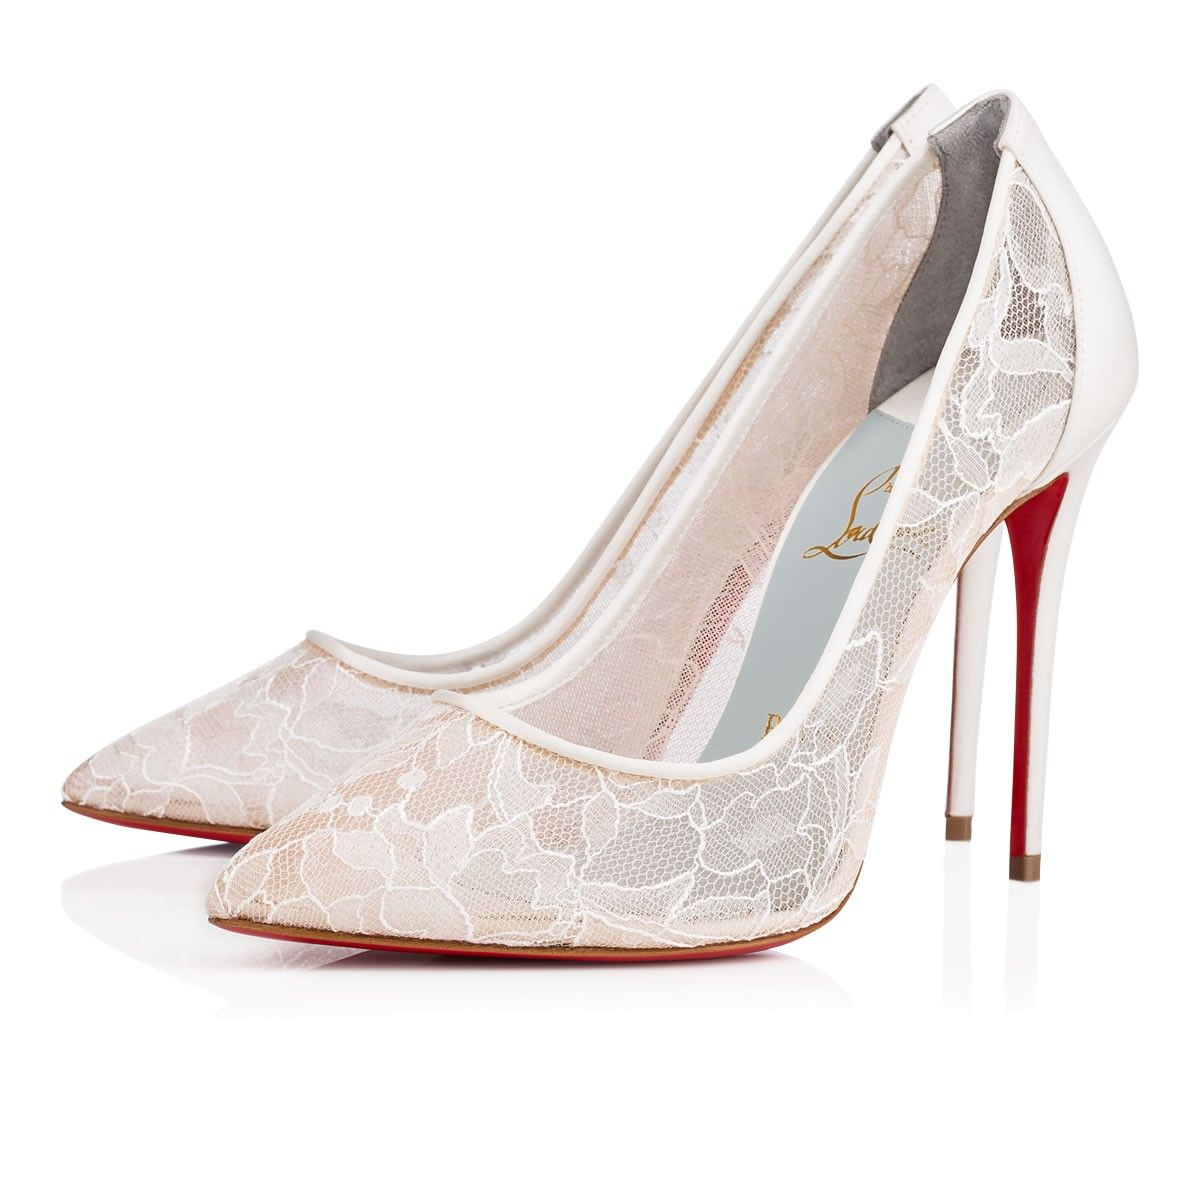 bf9373df30e252 Shoes - Follies Lace - Christian Louboutin